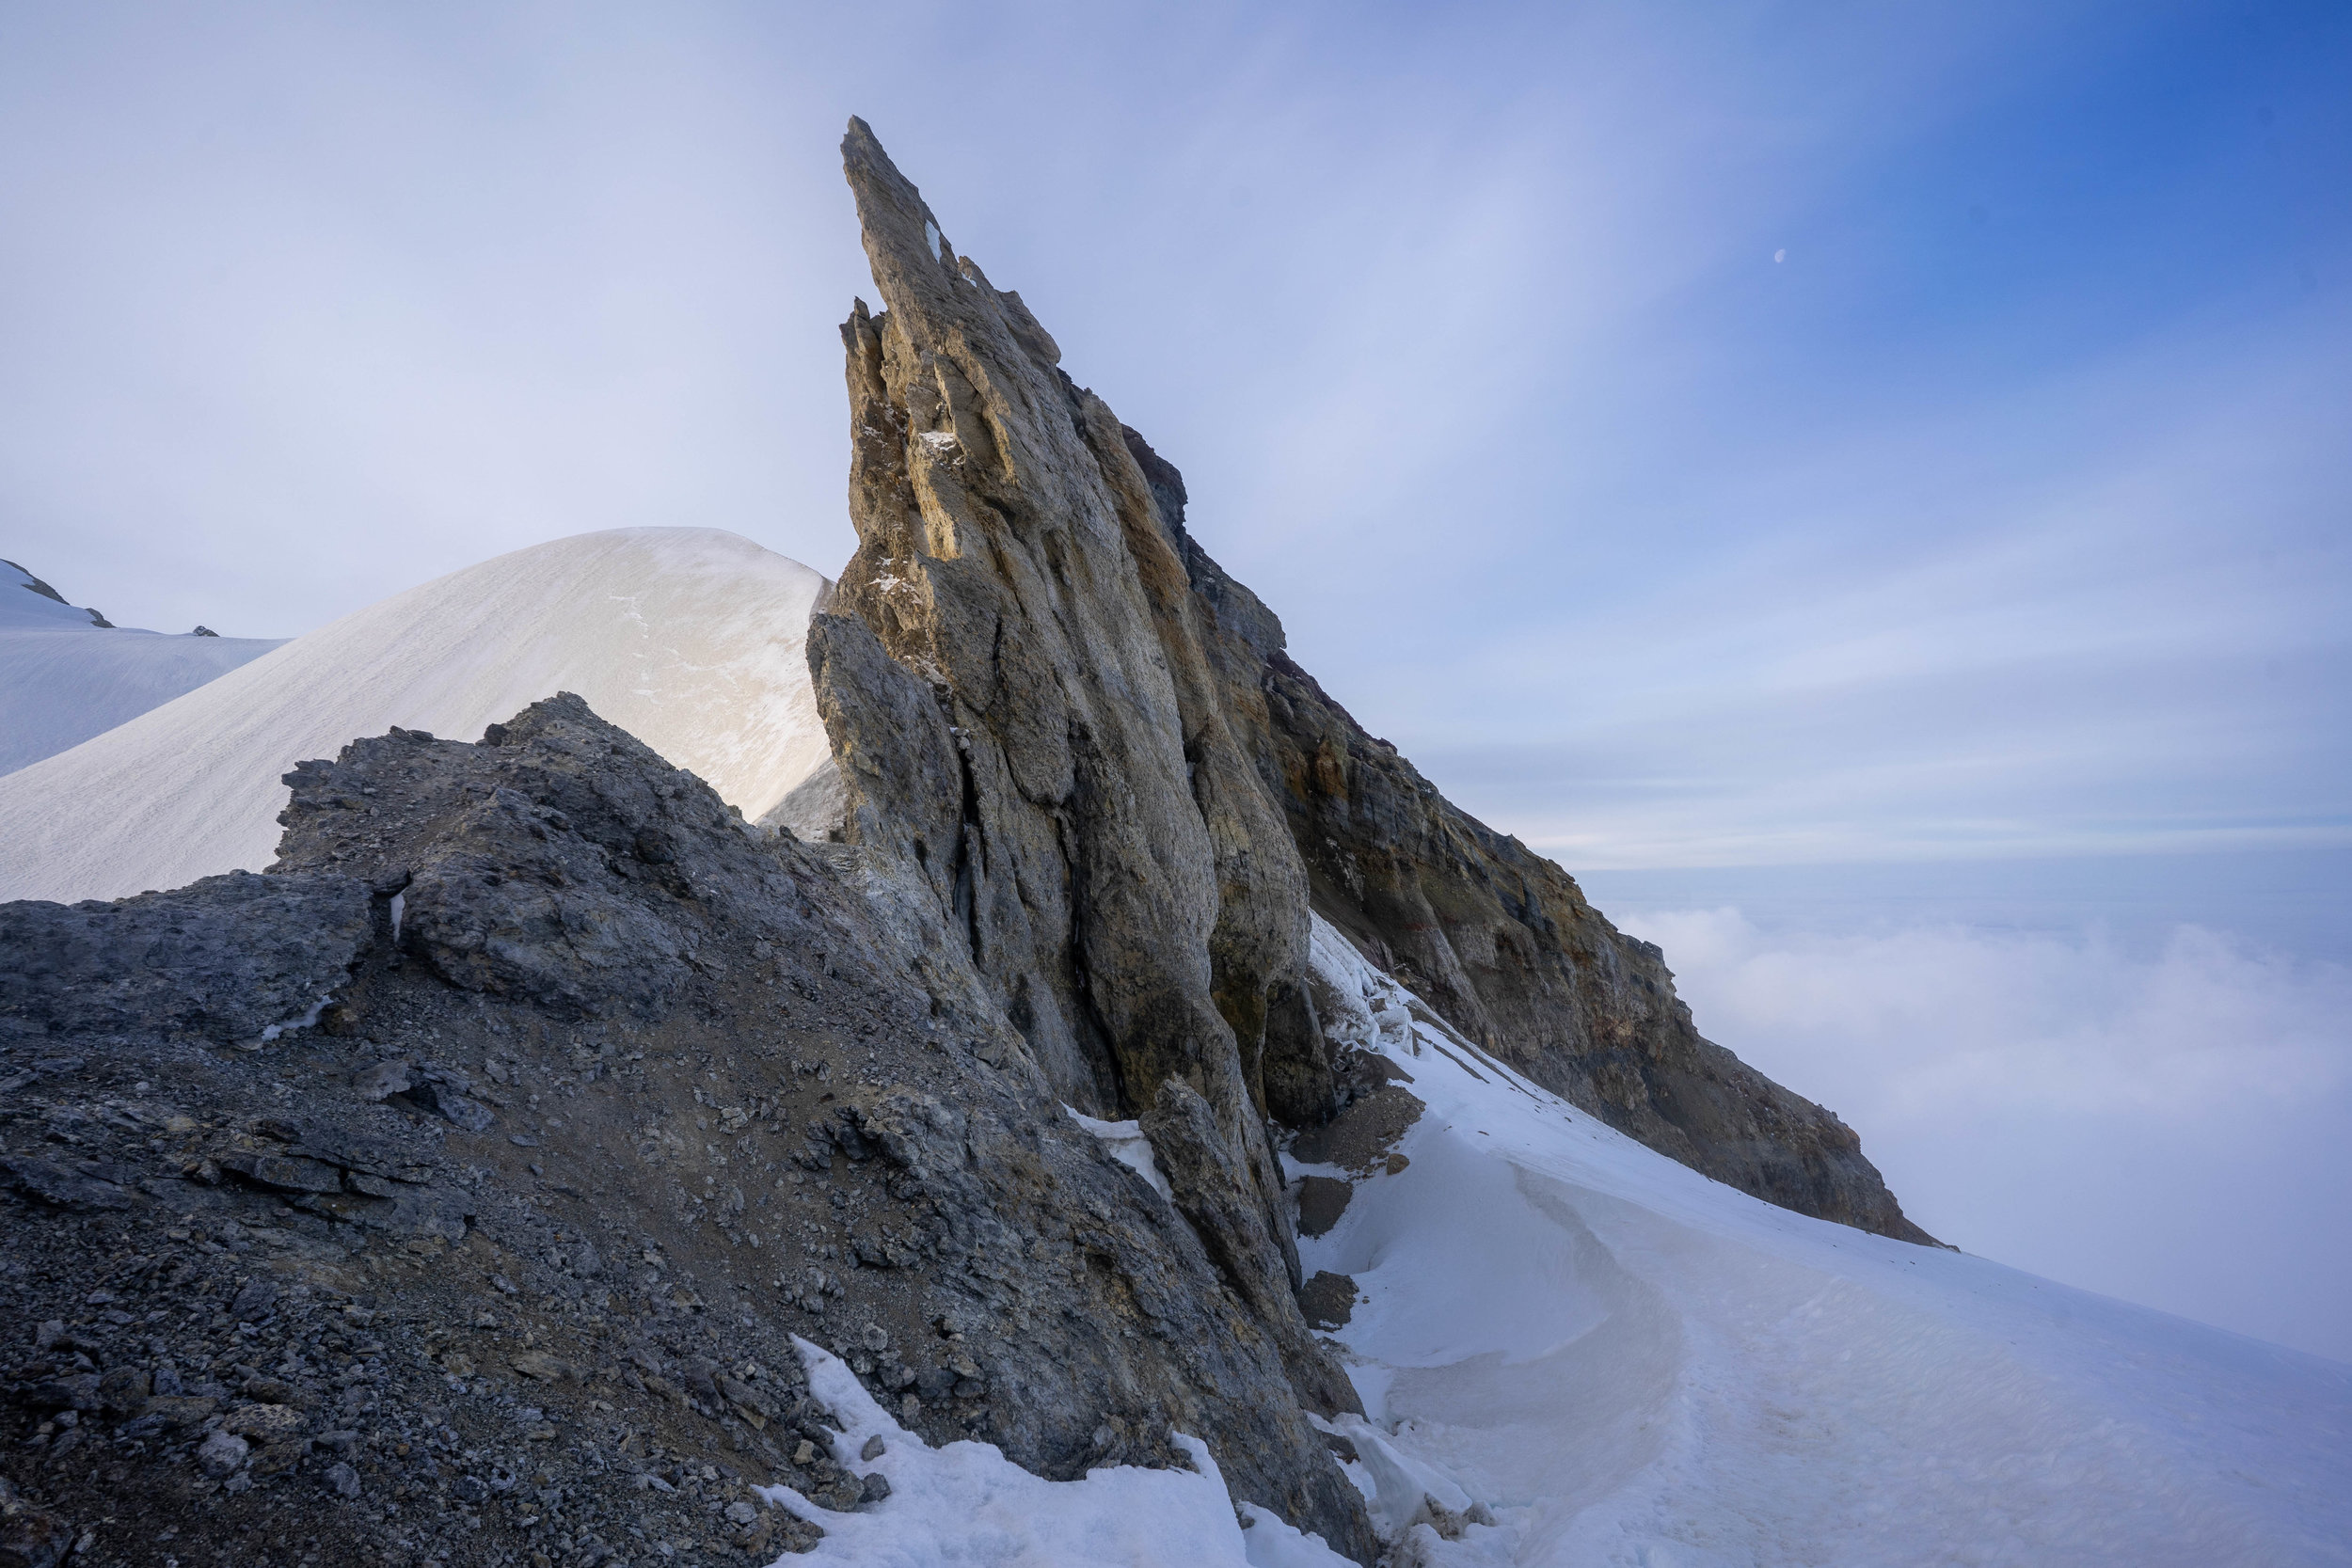 climbing-mount-baker-via-easton-glacier-route.jpg